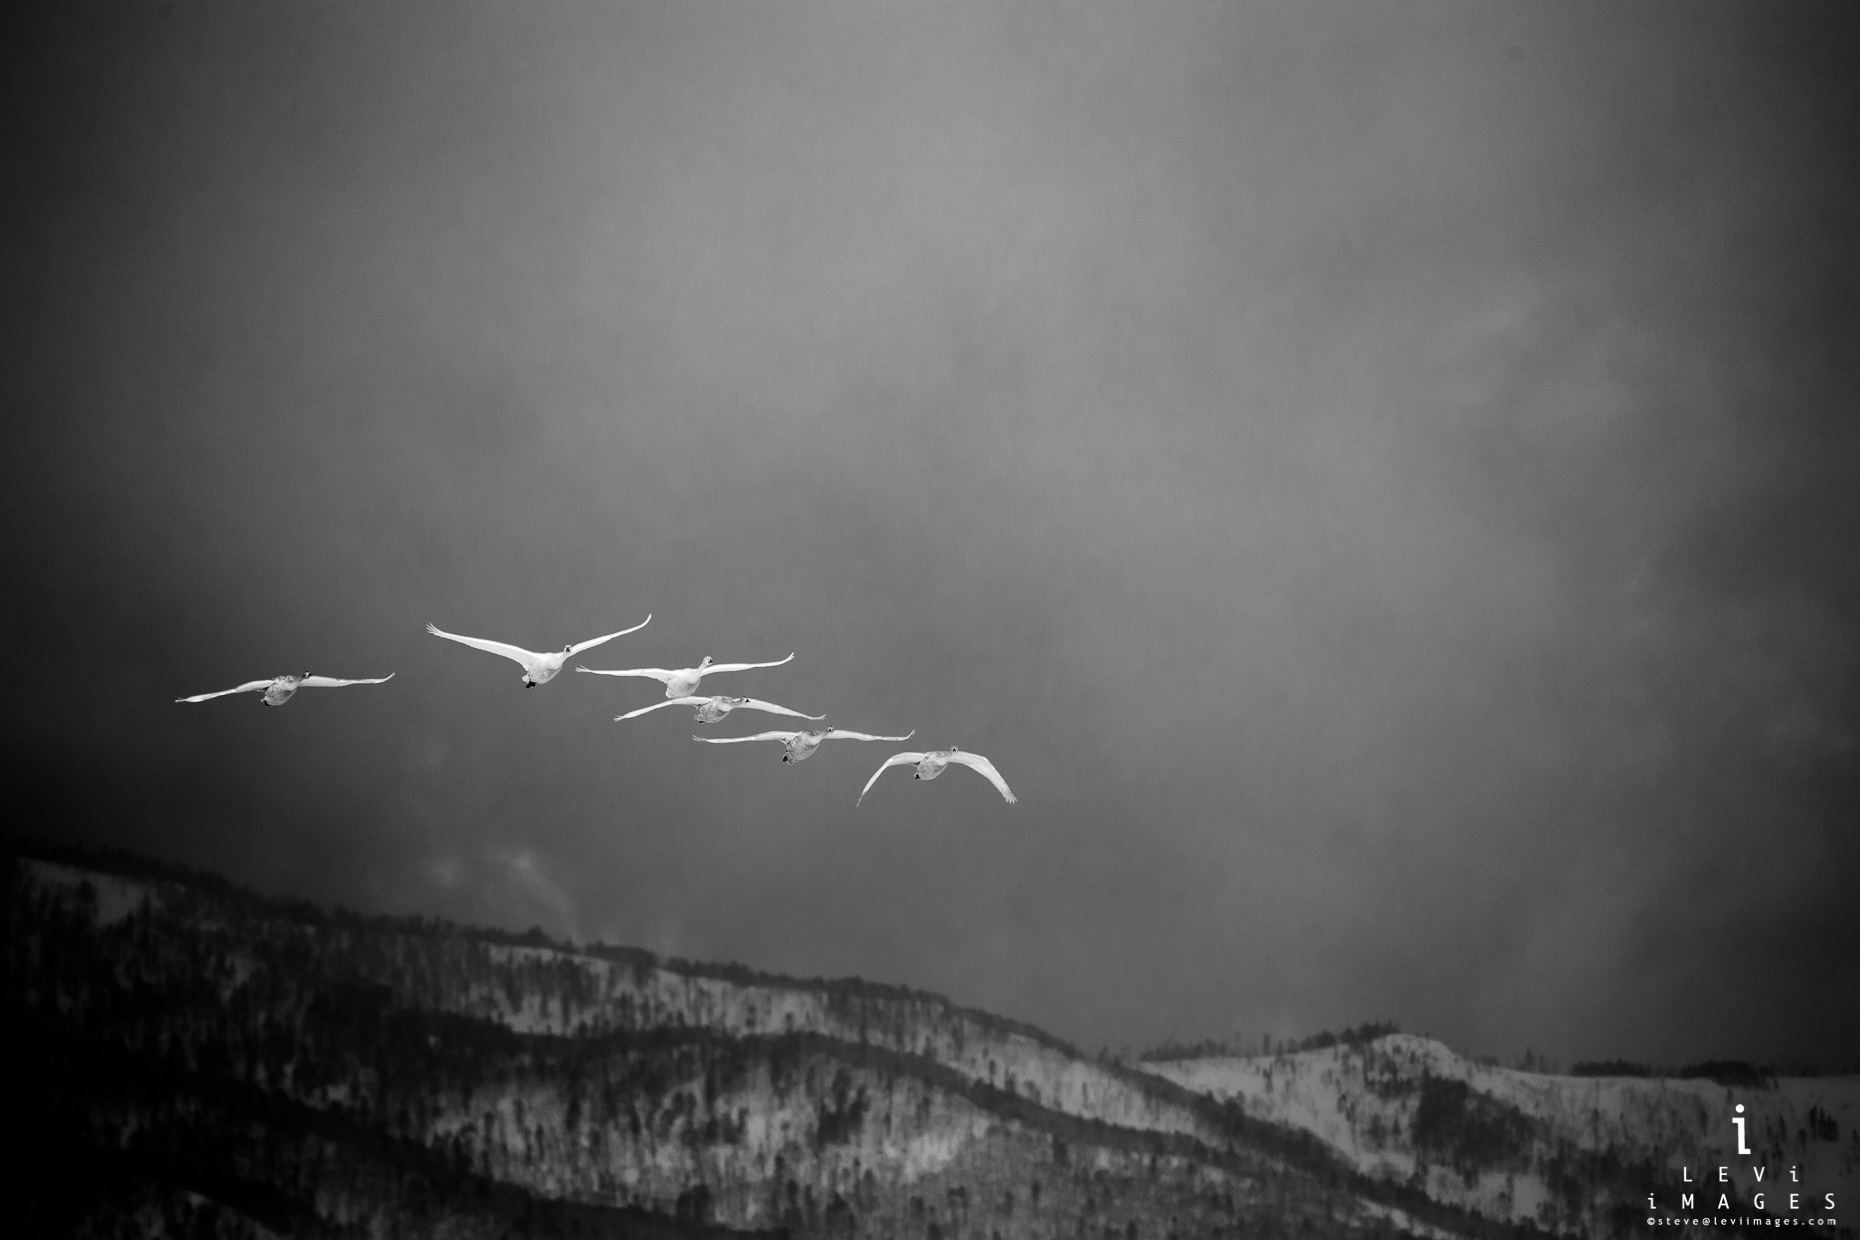 Hokkaido Whooper Swan (Cygnus cygnus) flying in front of mountains. Japan